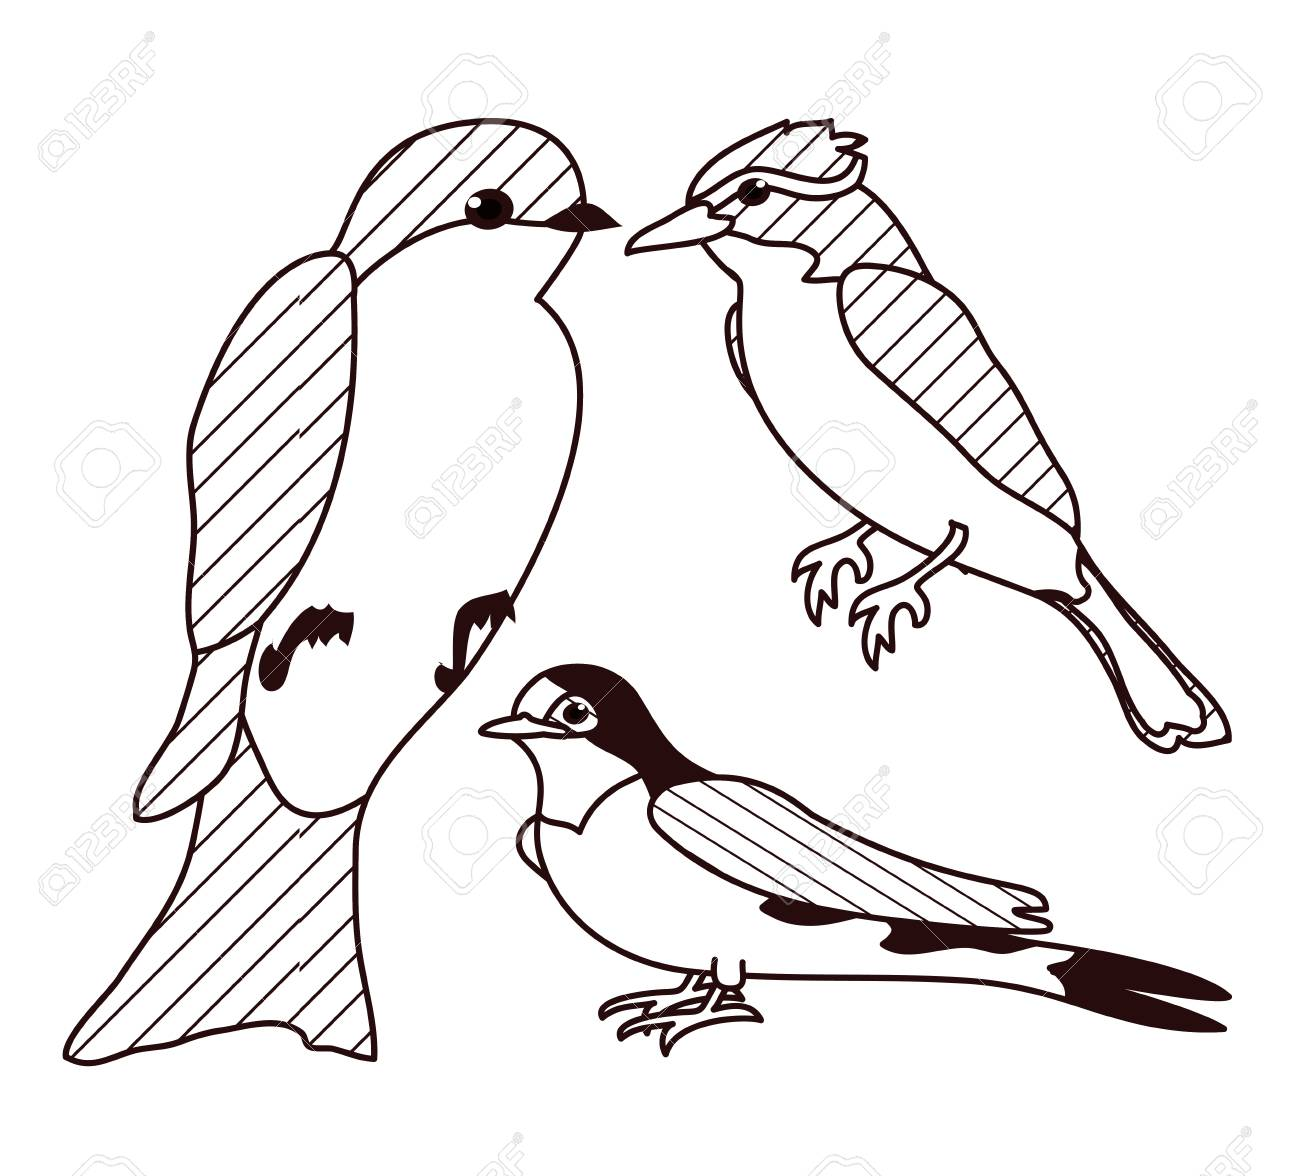 Beautiful birds drawings on black and white vector illustration graphic design stock vector 96904244